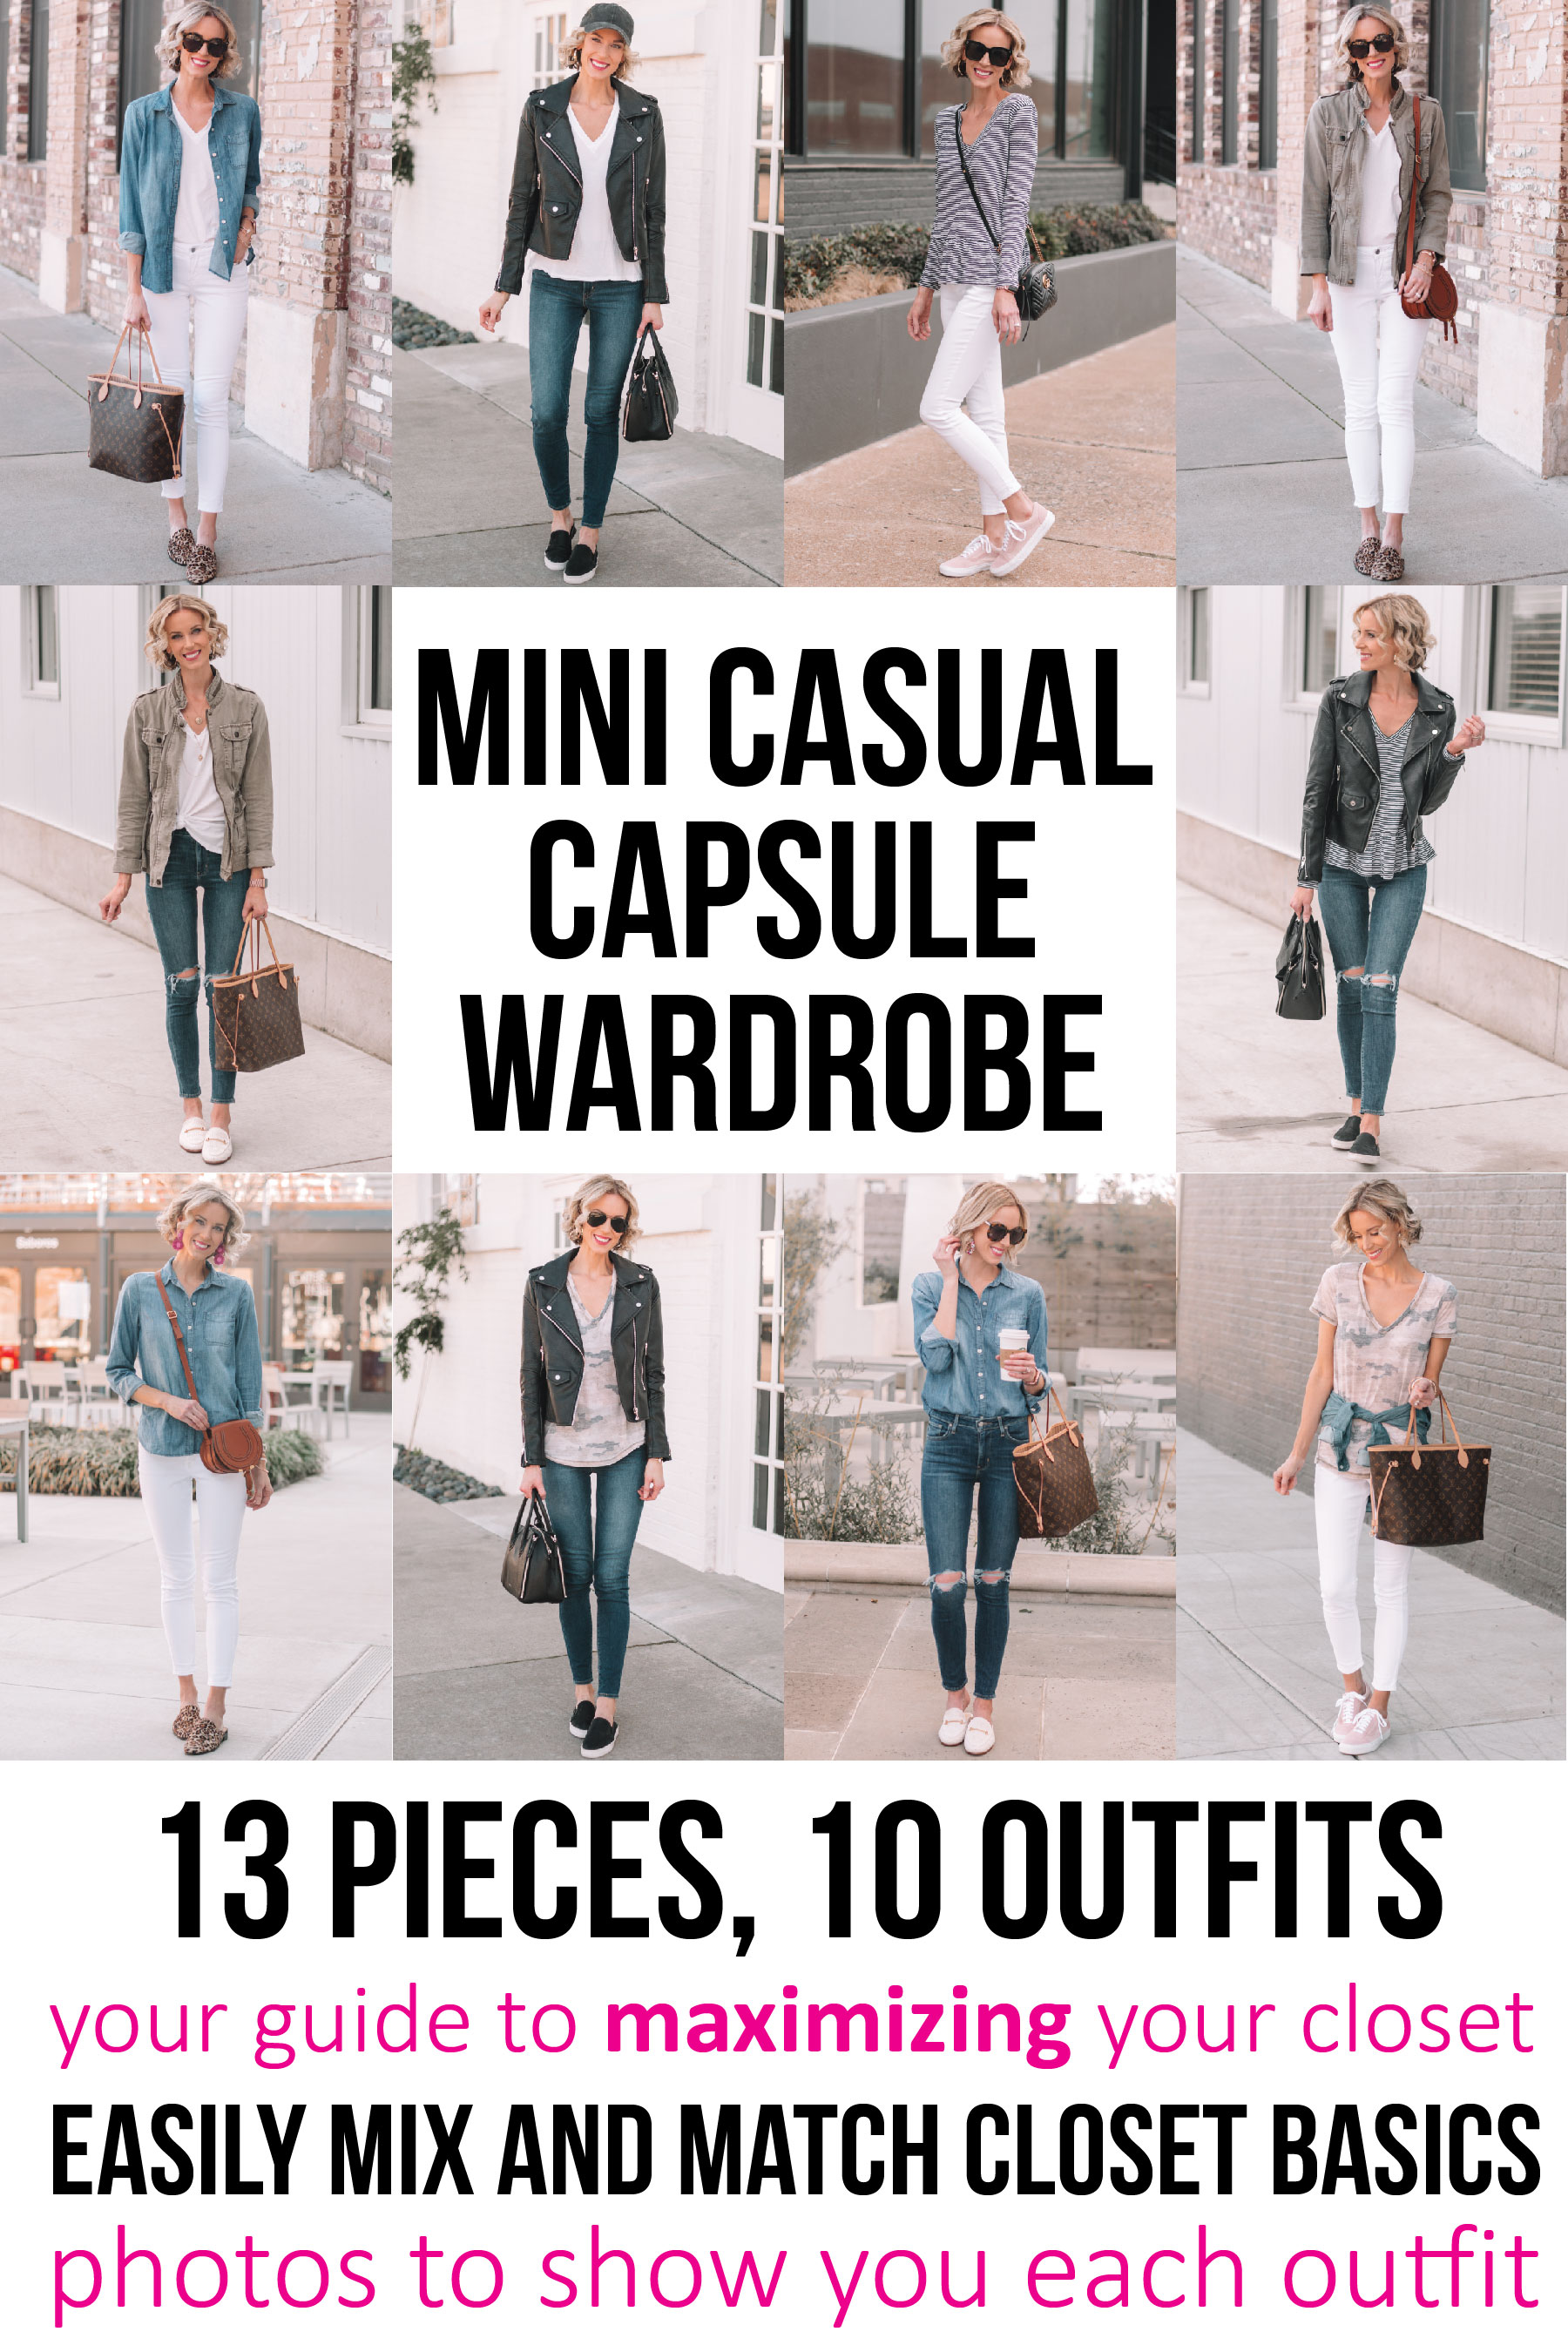 daa2f57b52f4 mini casual capsule wardrobe - 13 pieces, 10 outfits, post with everything  you need ...